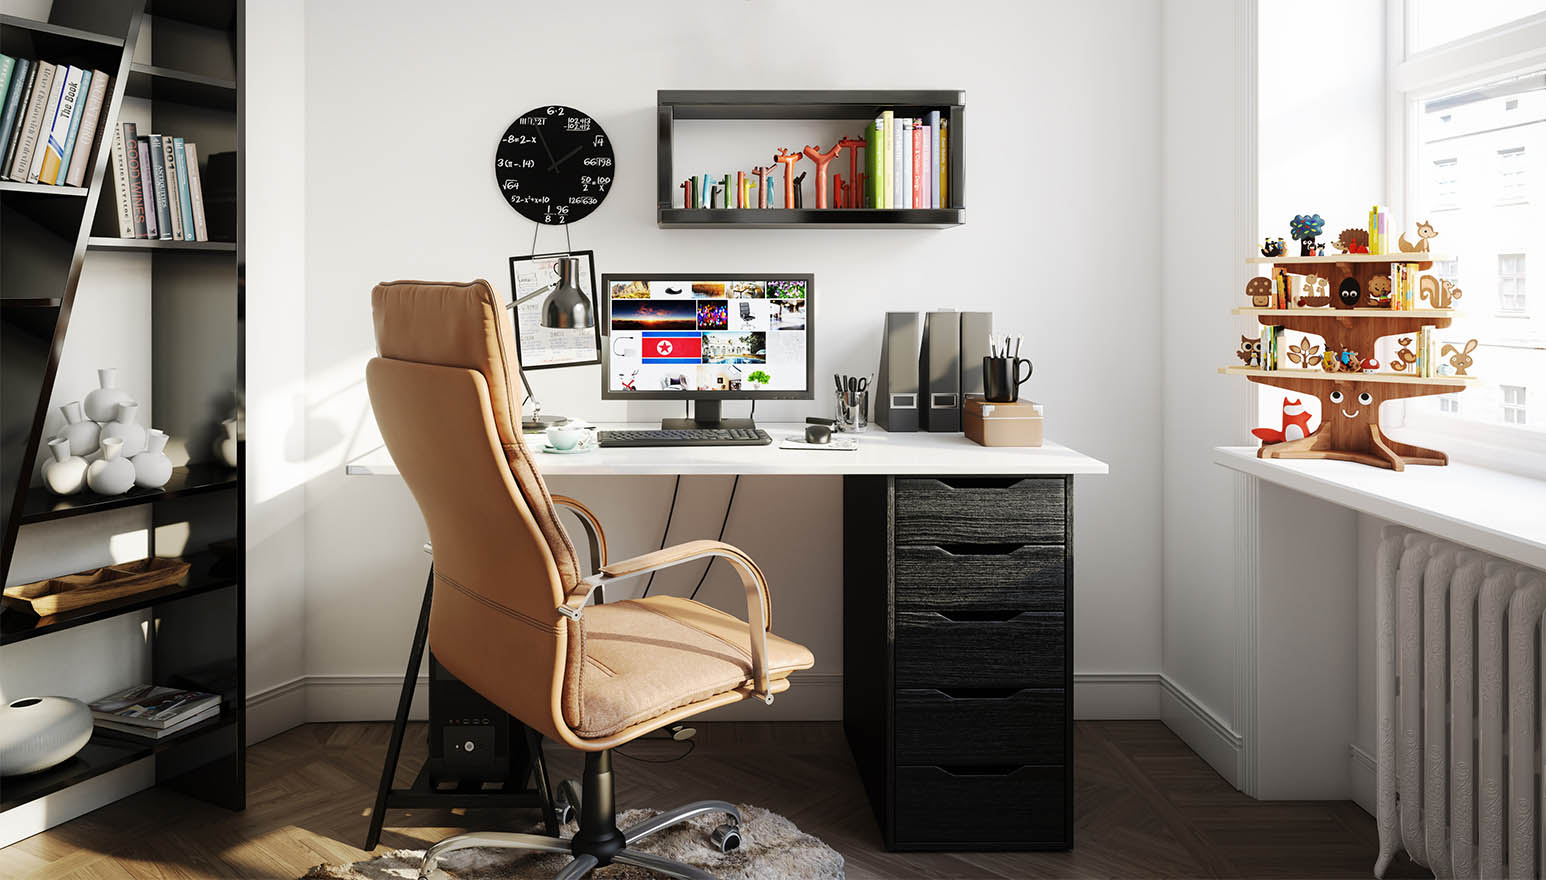 Having a professional and cozy workspace at home can be beneficial.